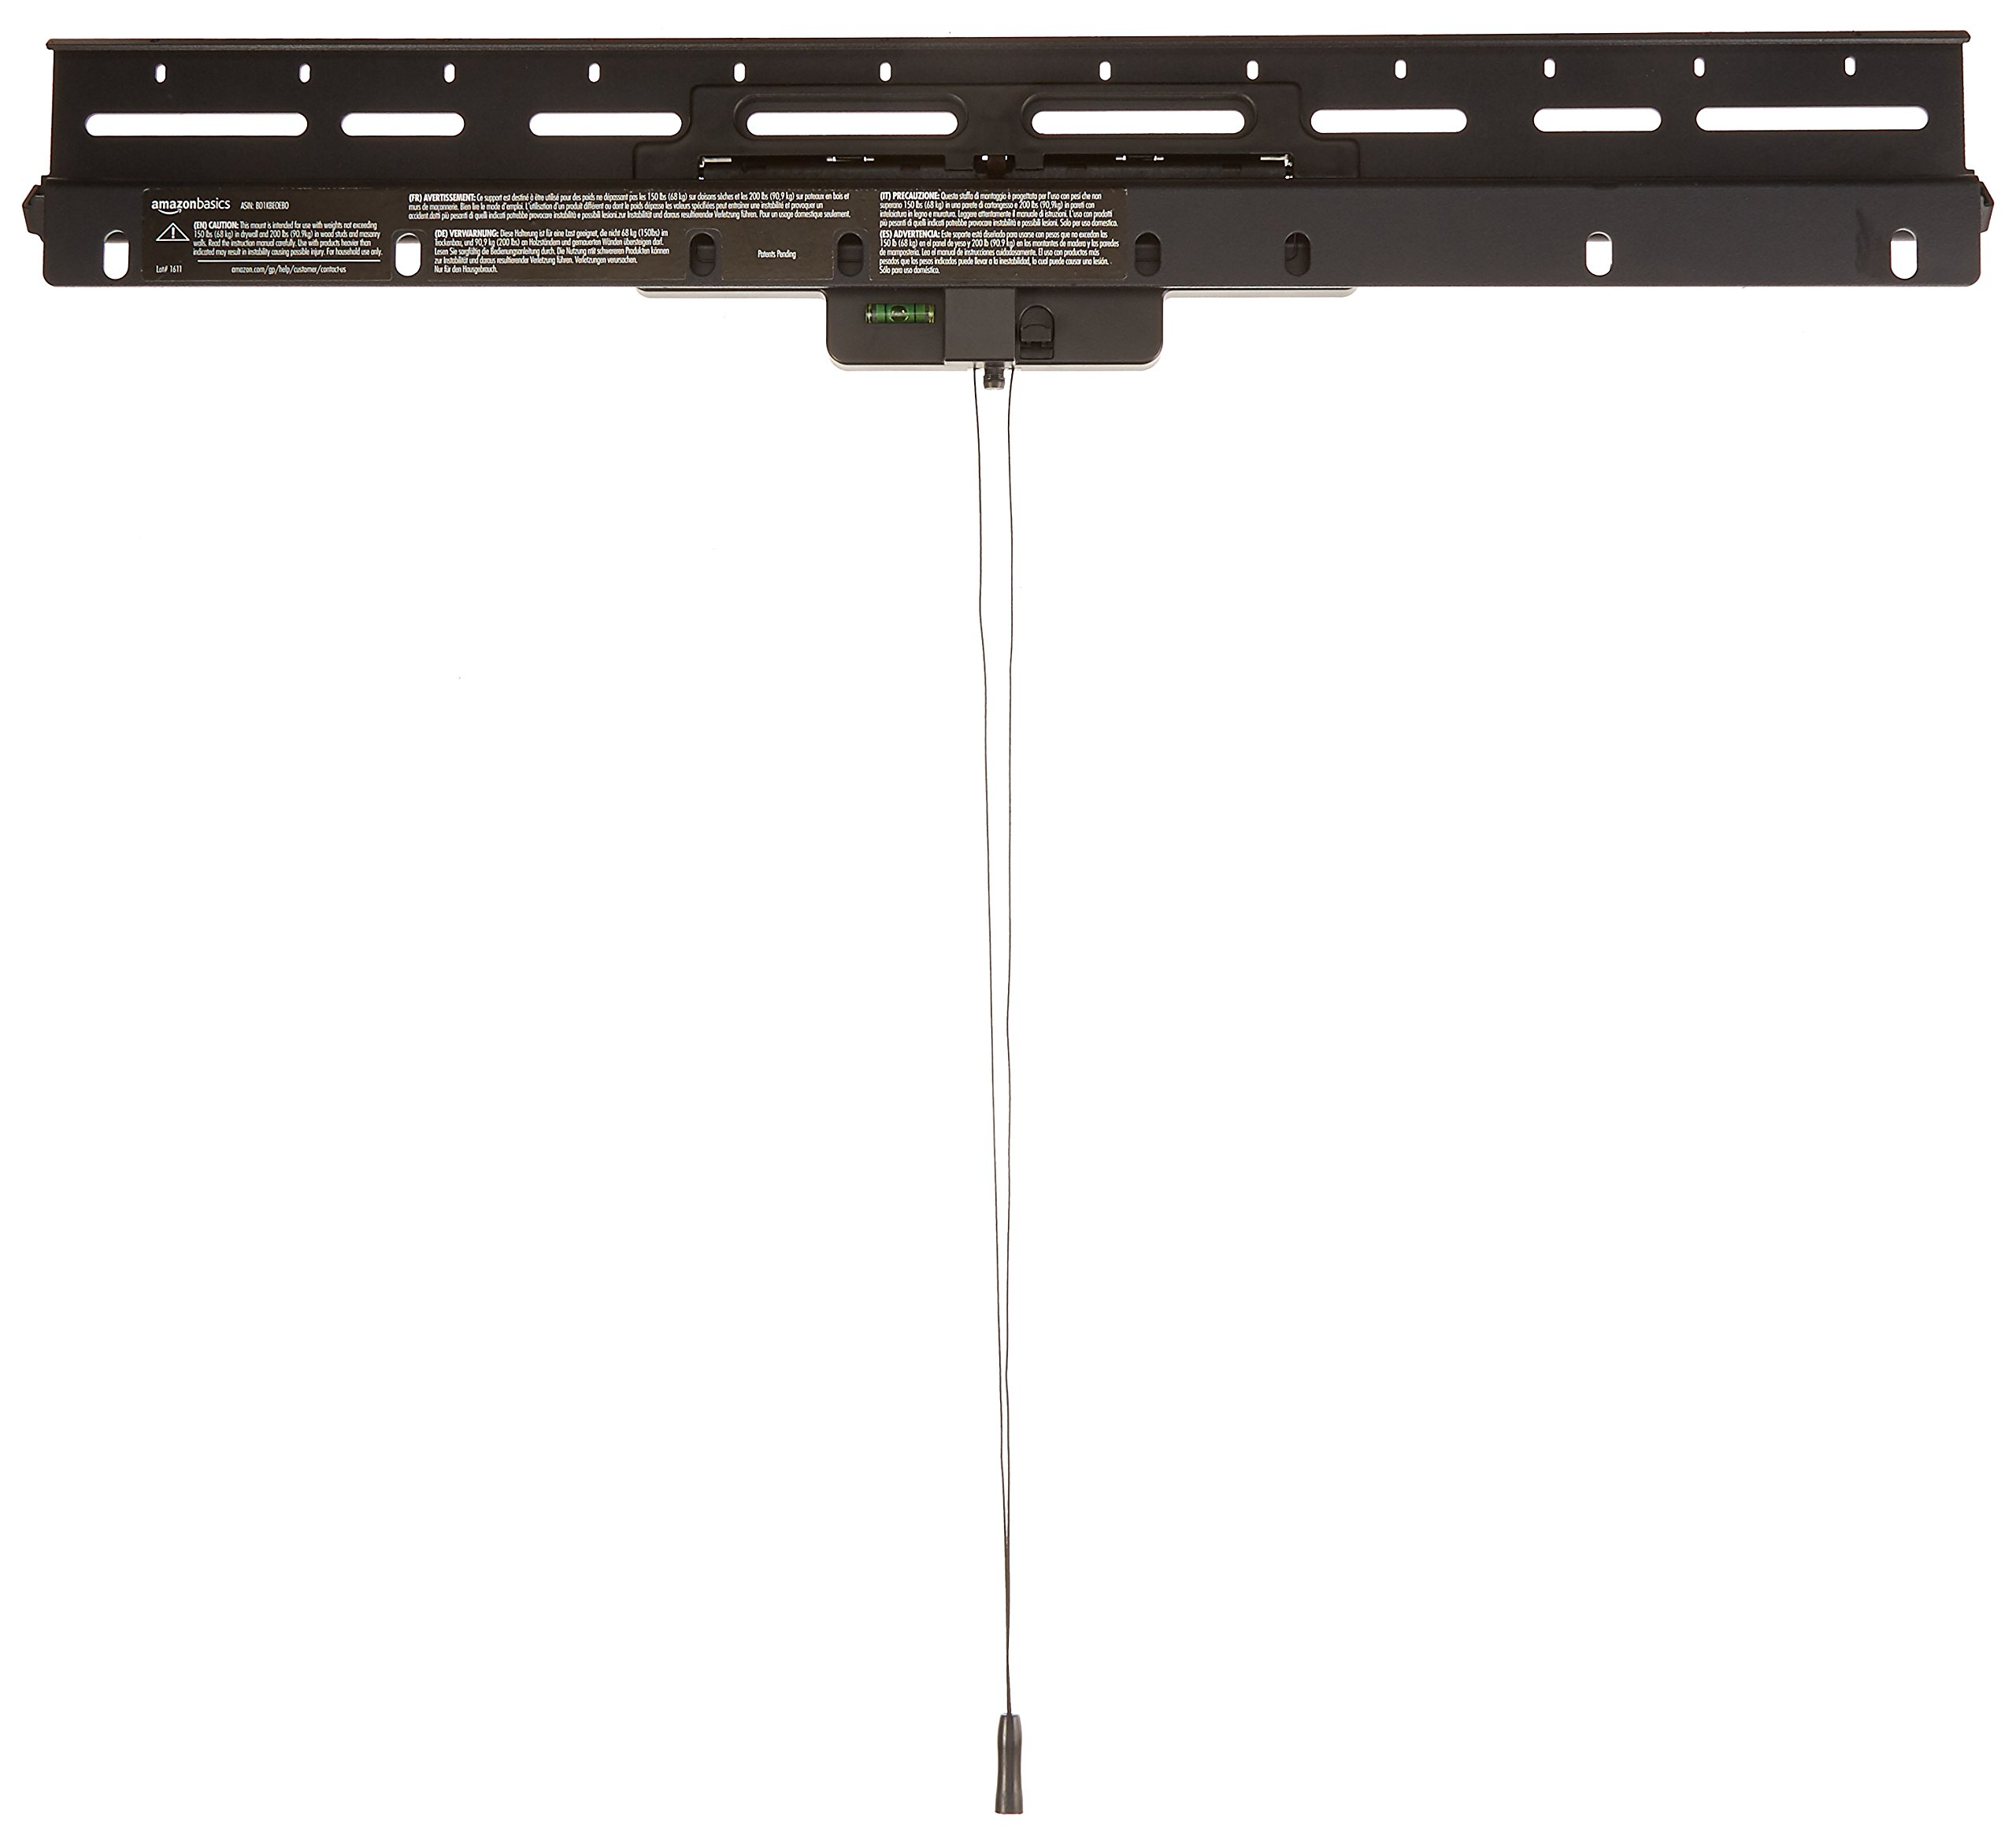 AmazonBasics No-Stud Heavy-Duty Tilting TV Wall Mount Bracket for 32-inch to 80-inch TVs